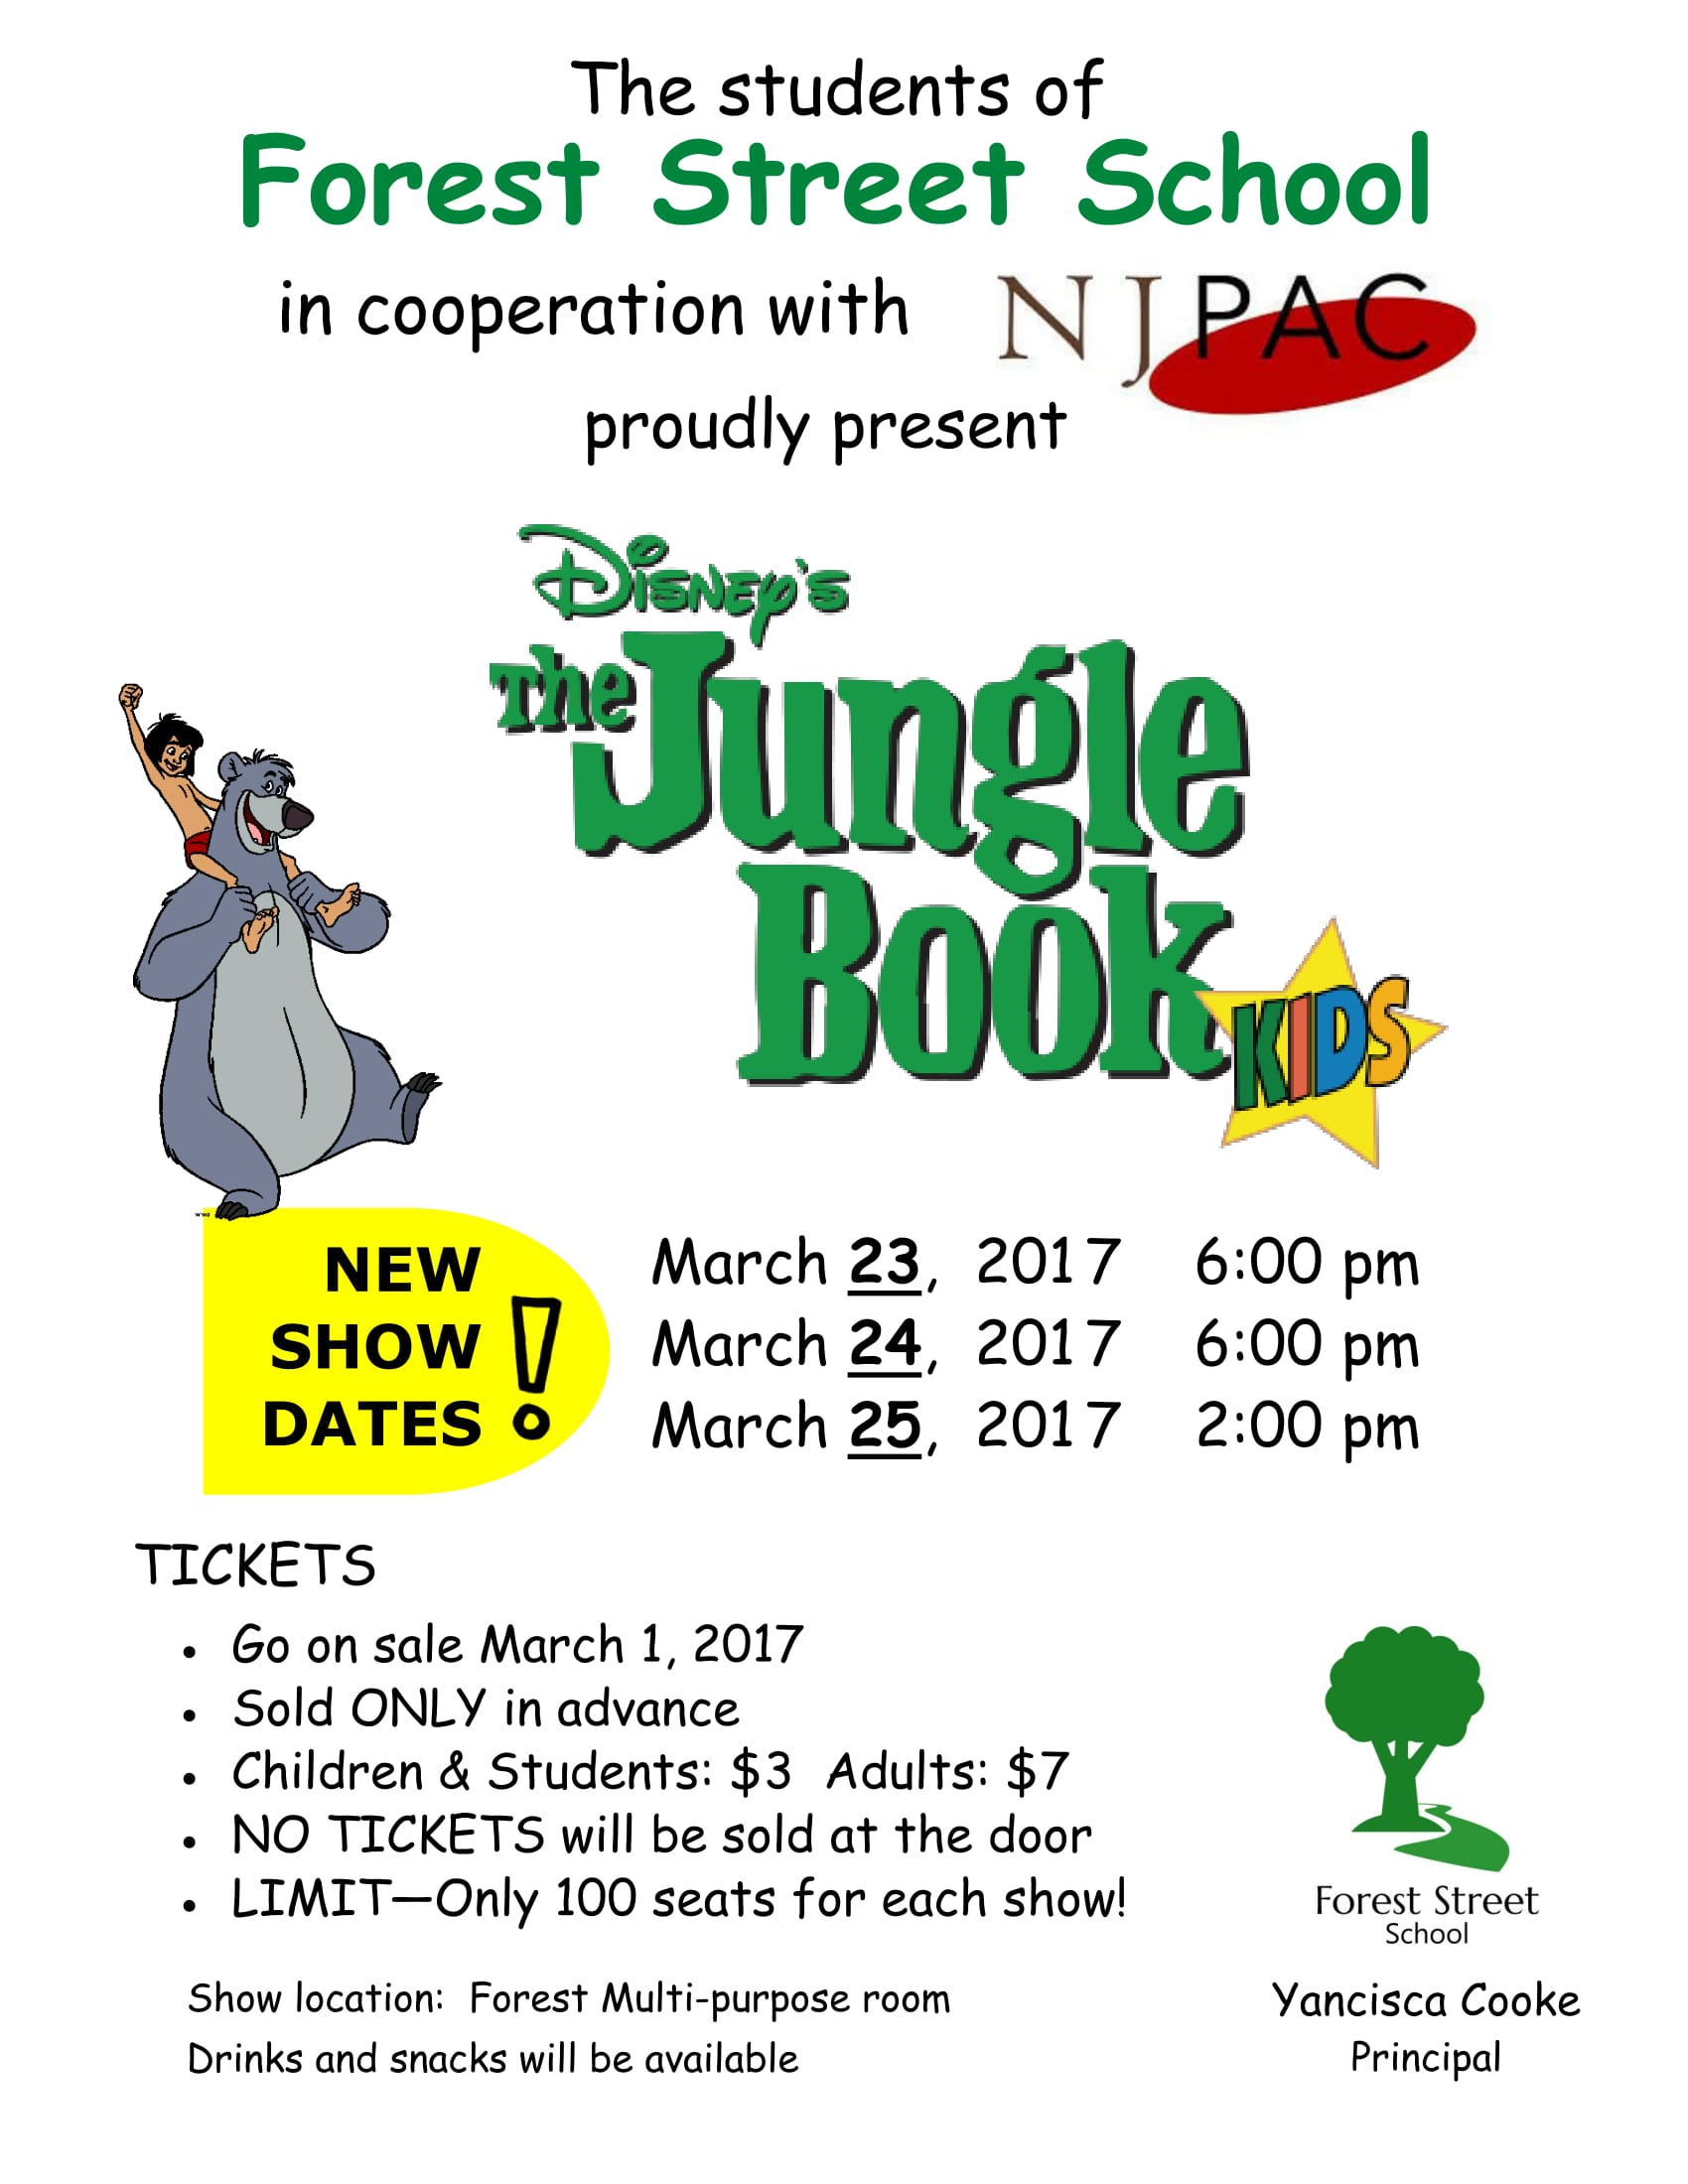 Forest Street School's Jungle Book Show Dates